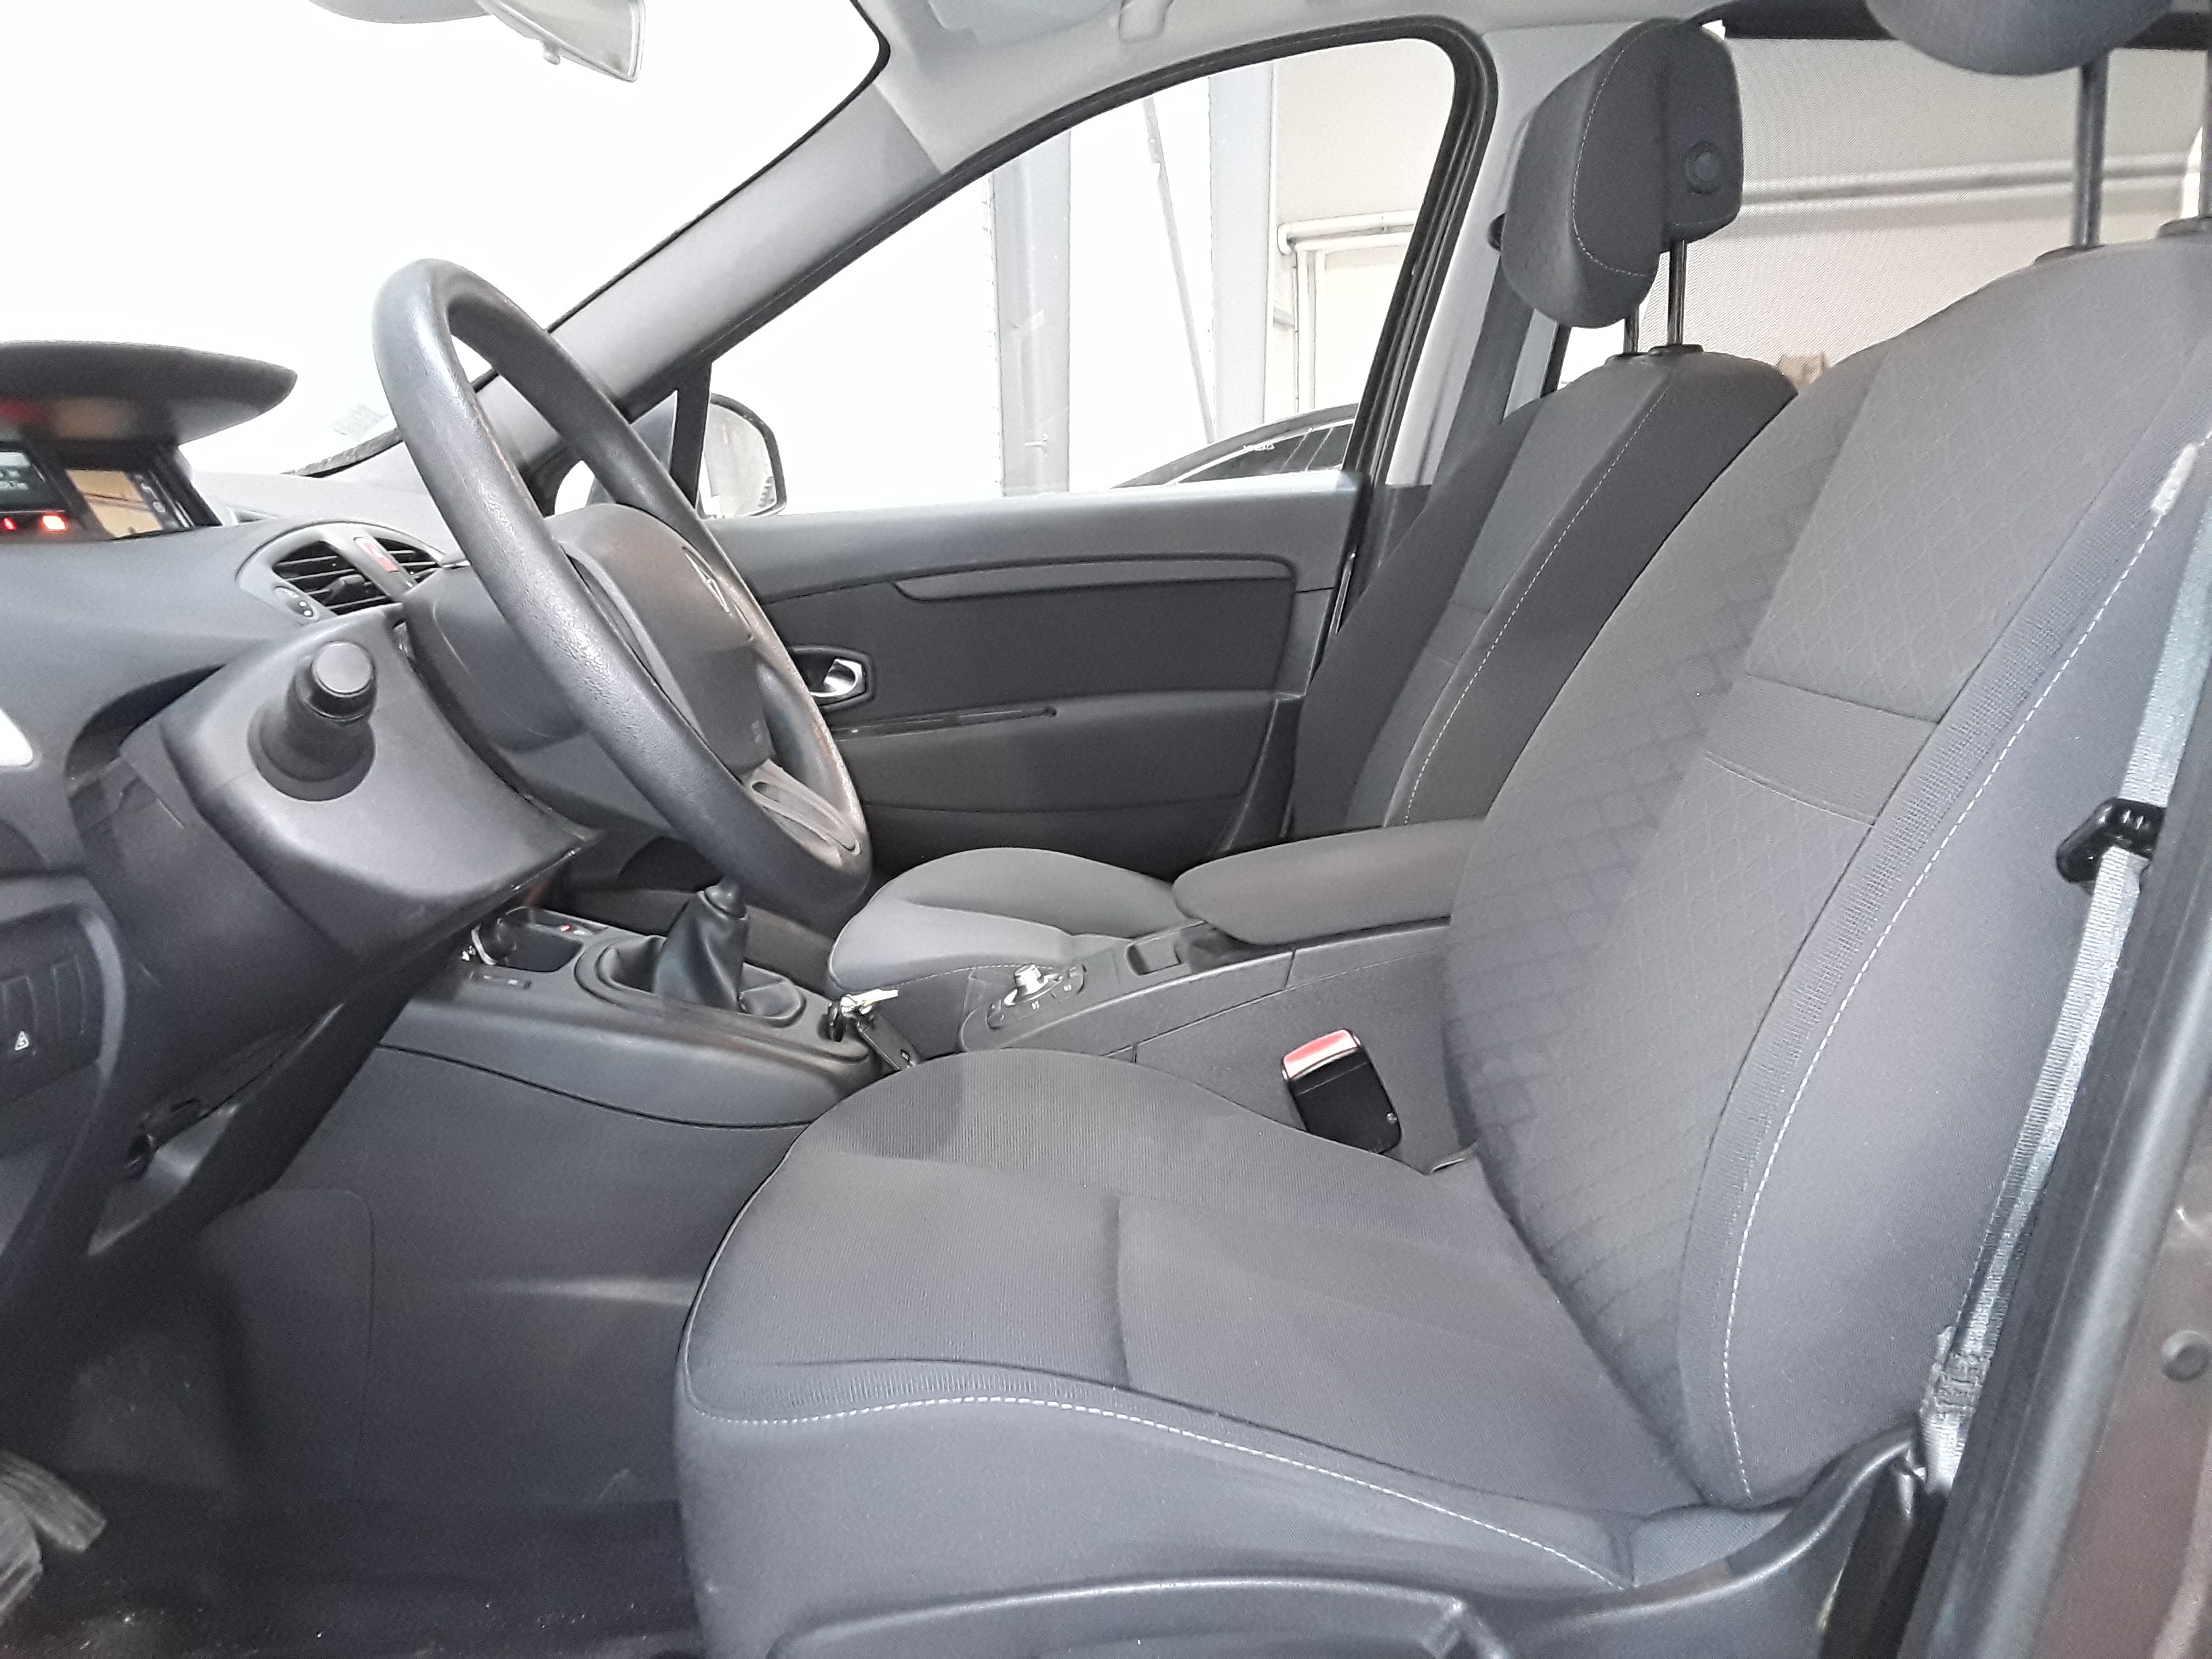 RENAULT GRAND SCENIC 2010 à 7490 € - Photo n°7